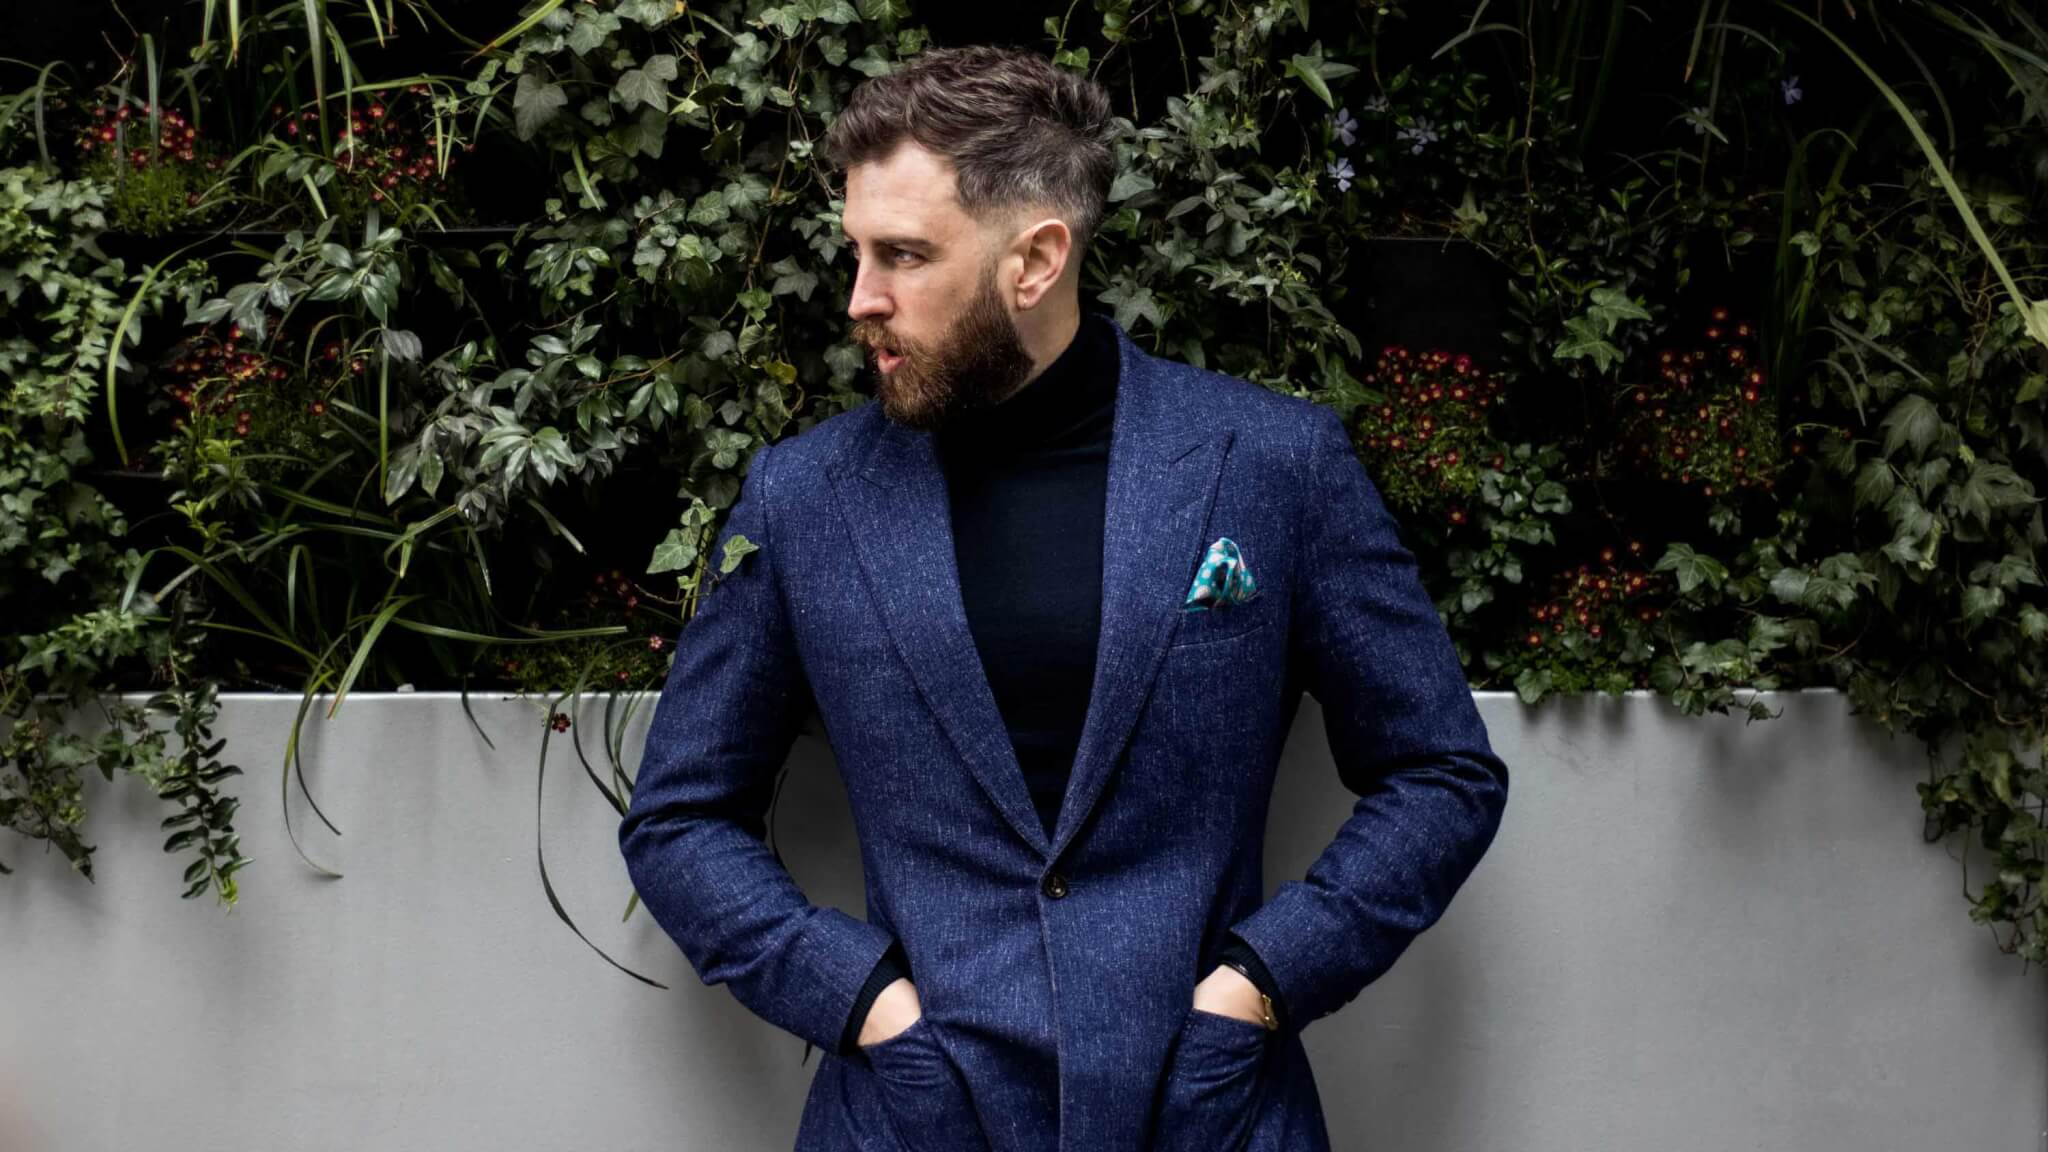 Bespoke Suit Jacket